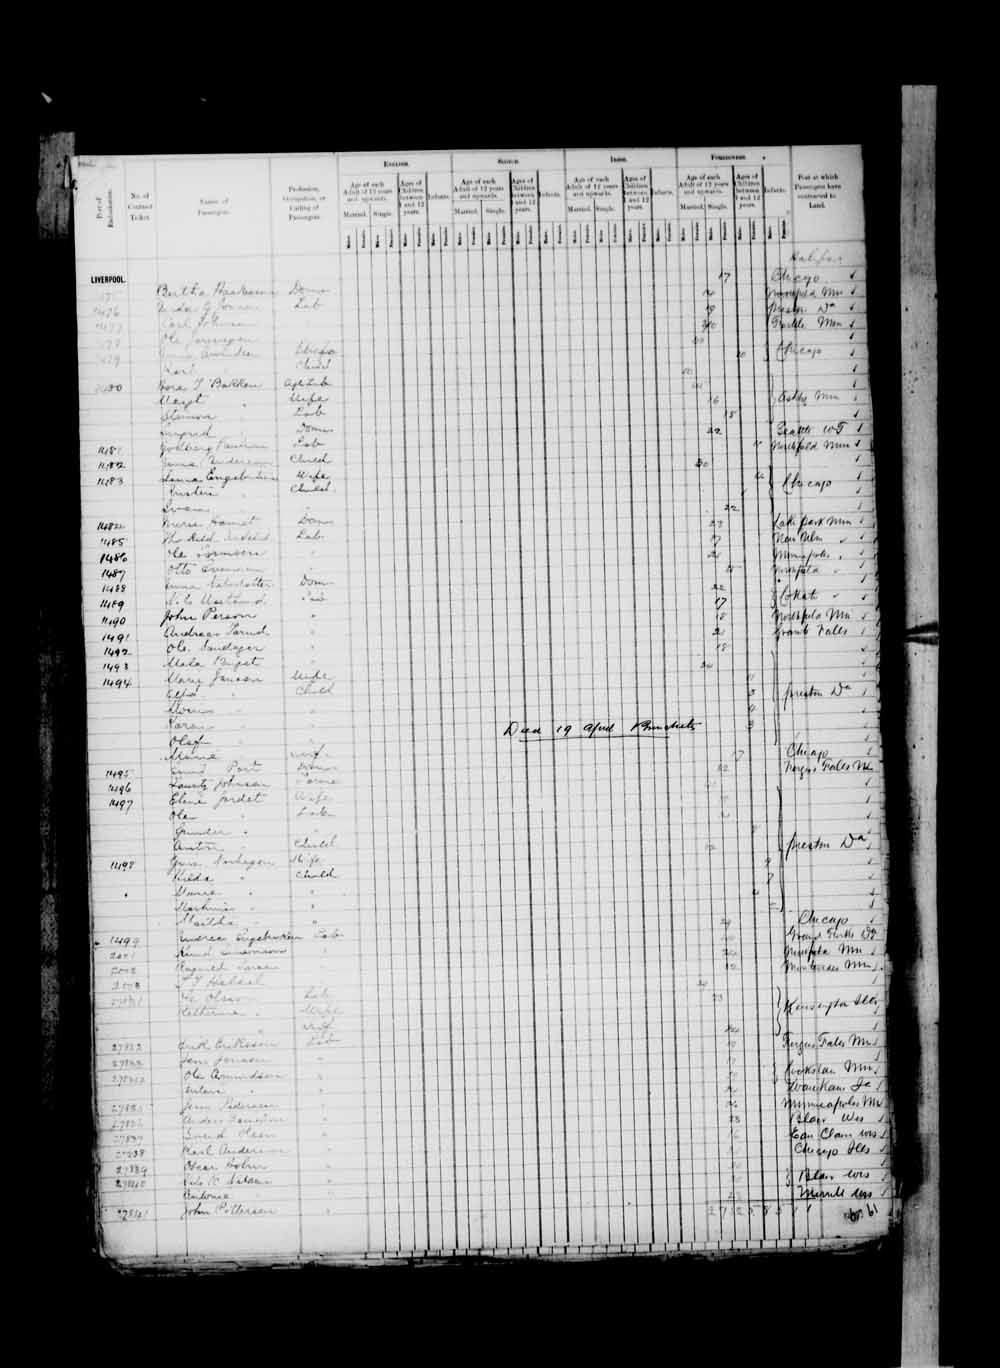 Digitized page of Passenger Lists for Image No.: e003674937